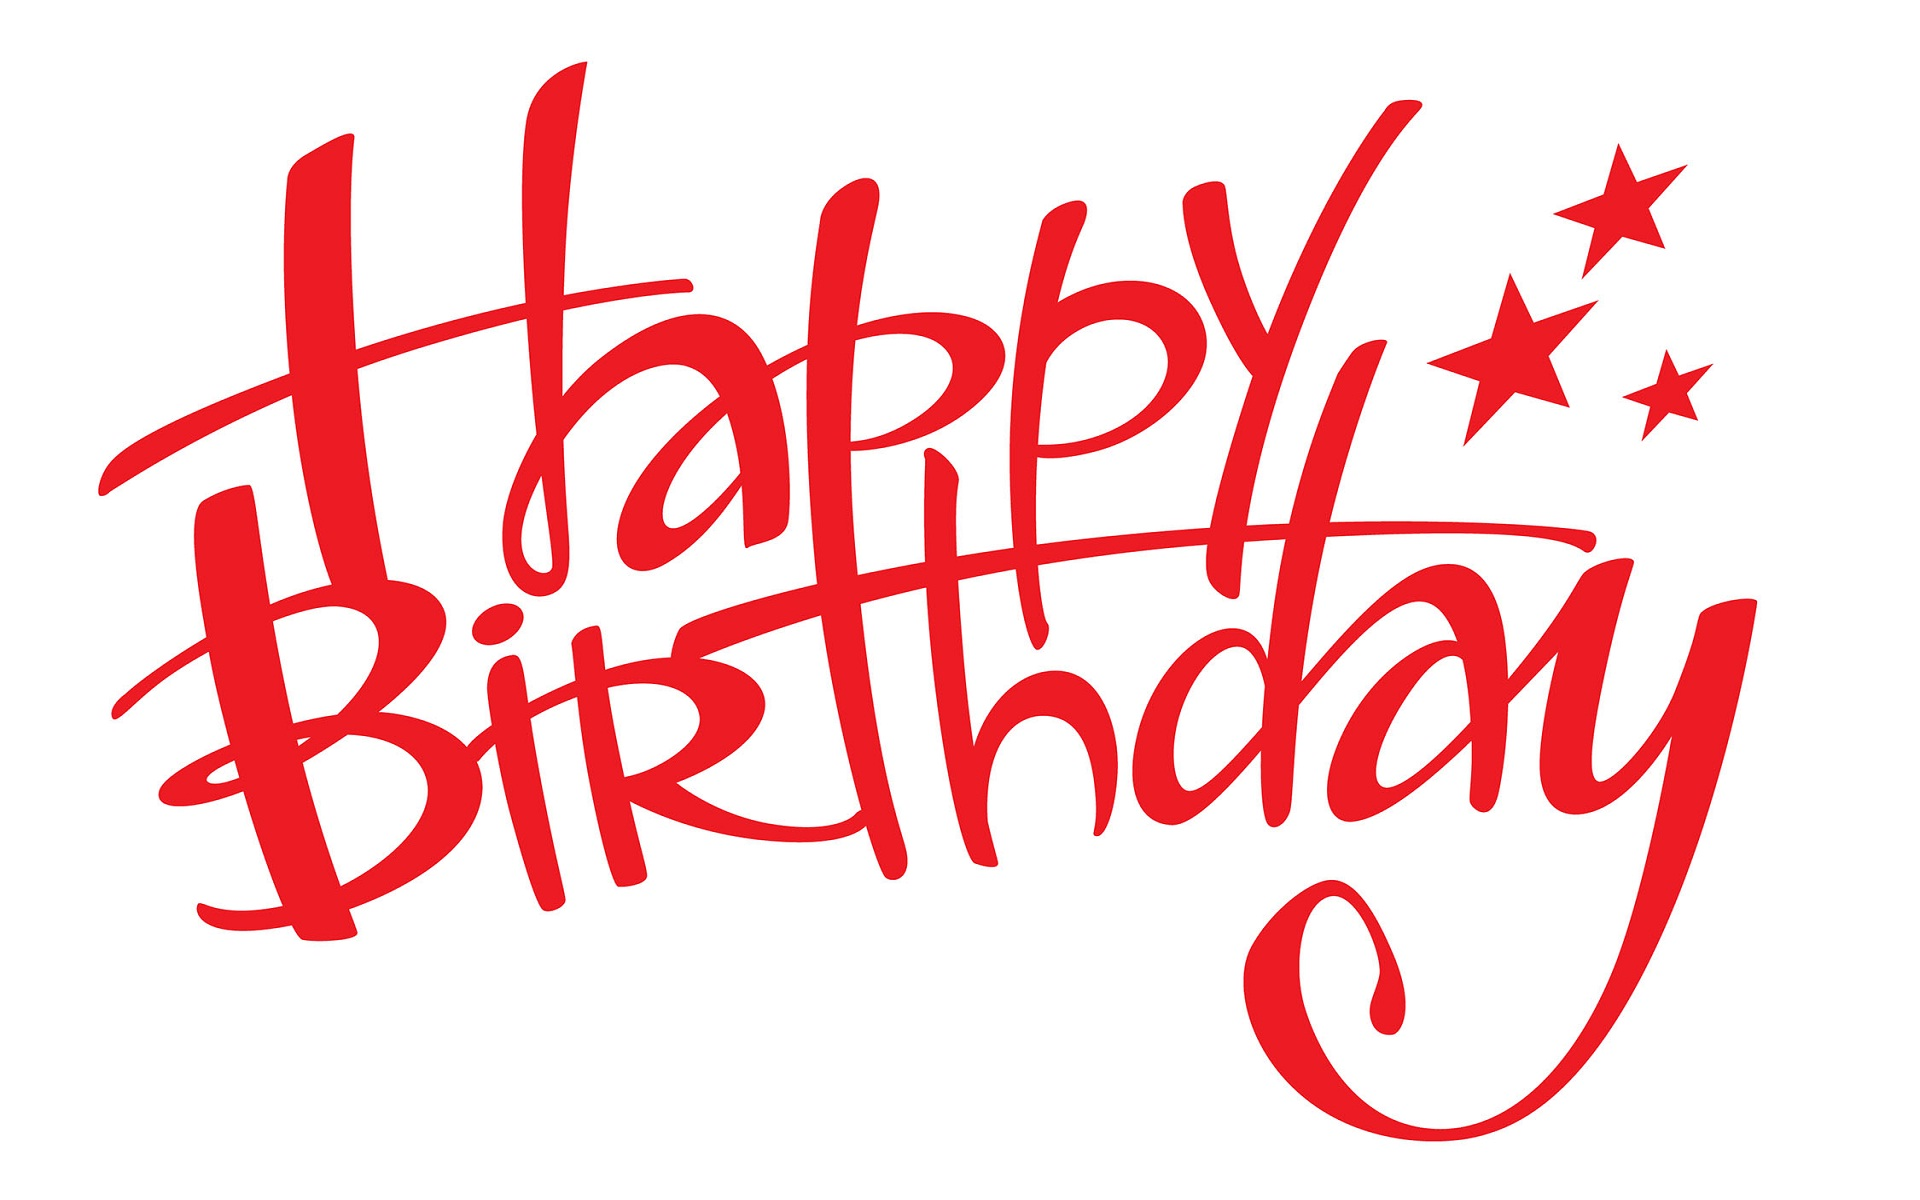 happy birthday font ; happy-birthday-wishes-superb-red-font-wallpaper